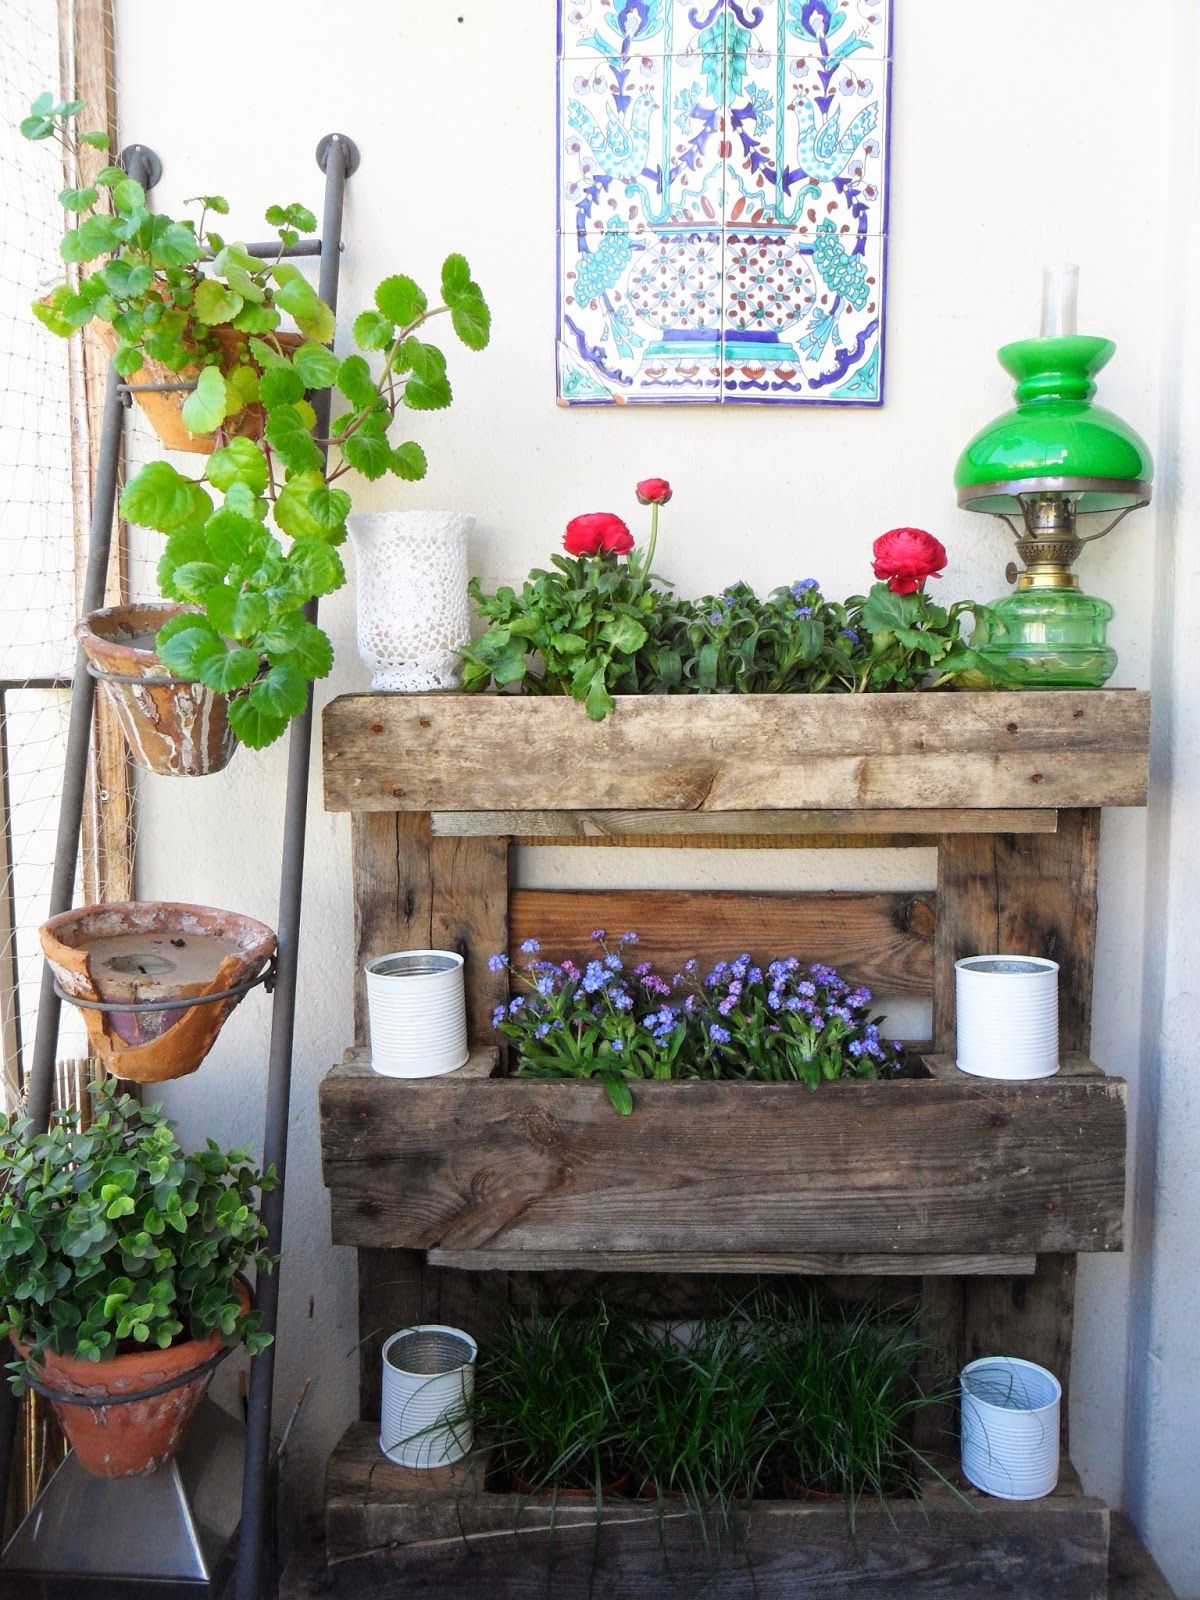 15 small garden ideas to grow in a limited space